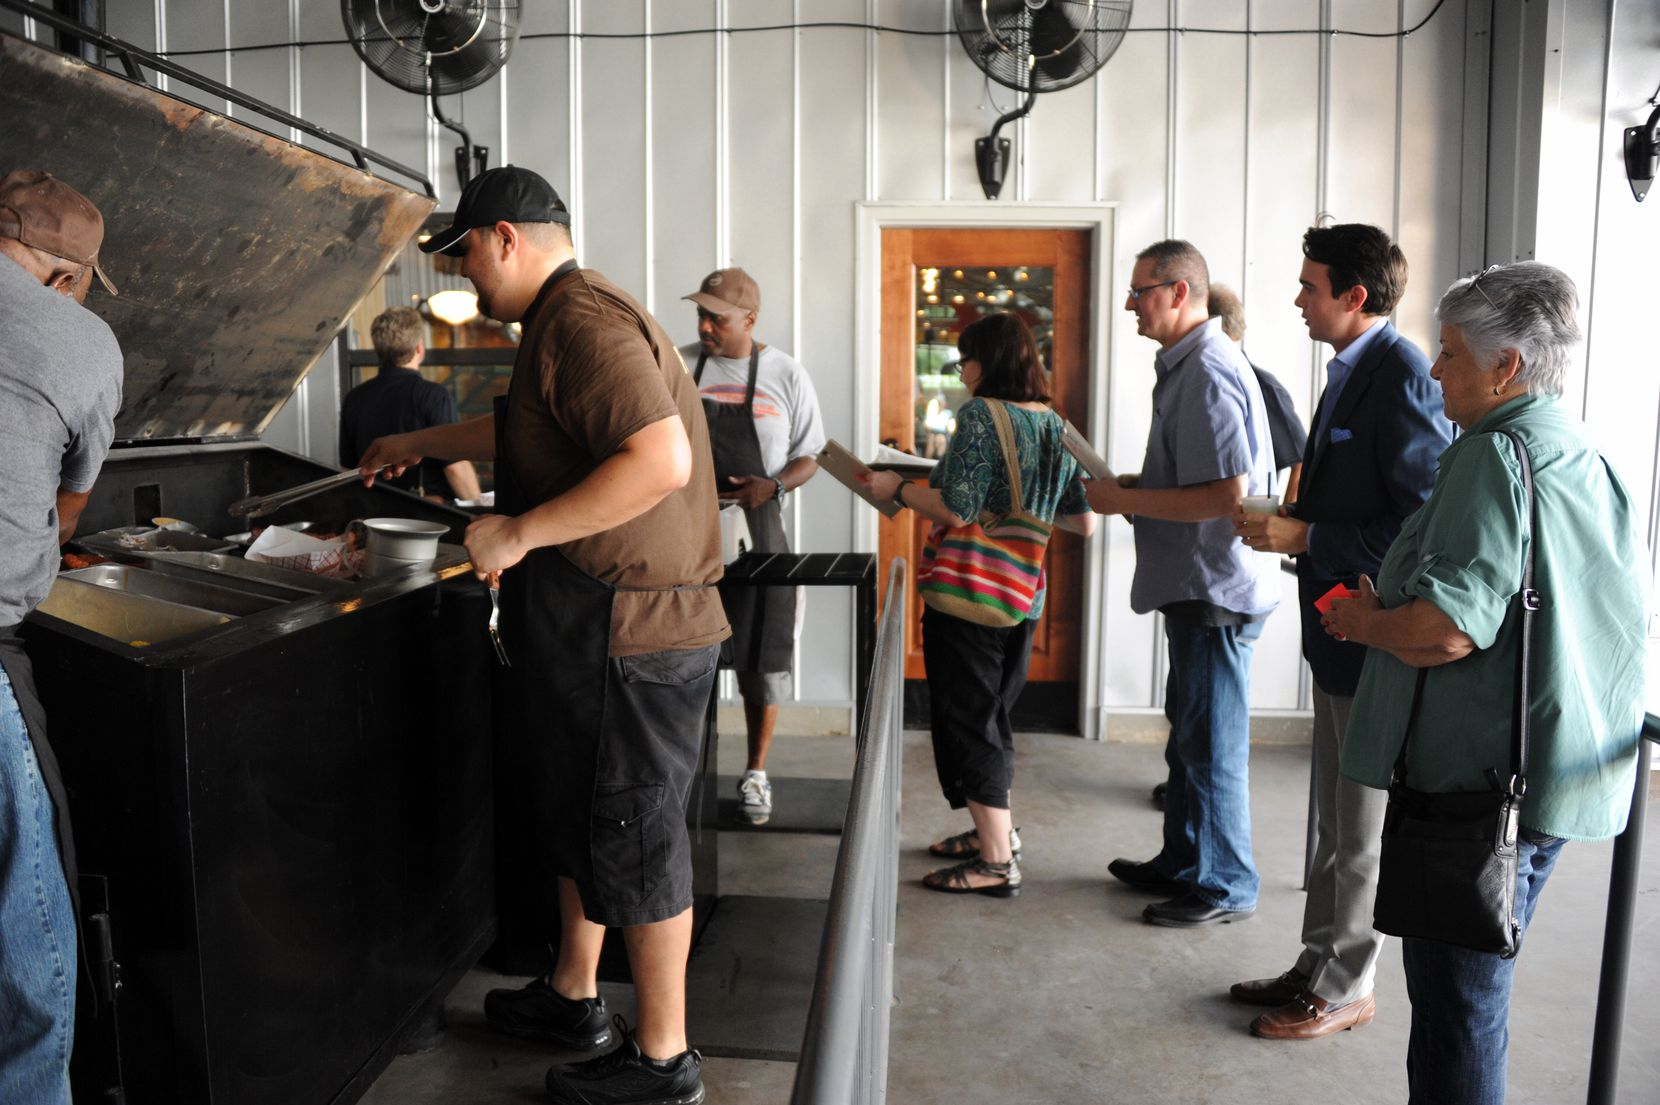 Guests form a line to order meats from the smoker at Ten 50 BBQ in Richardson.